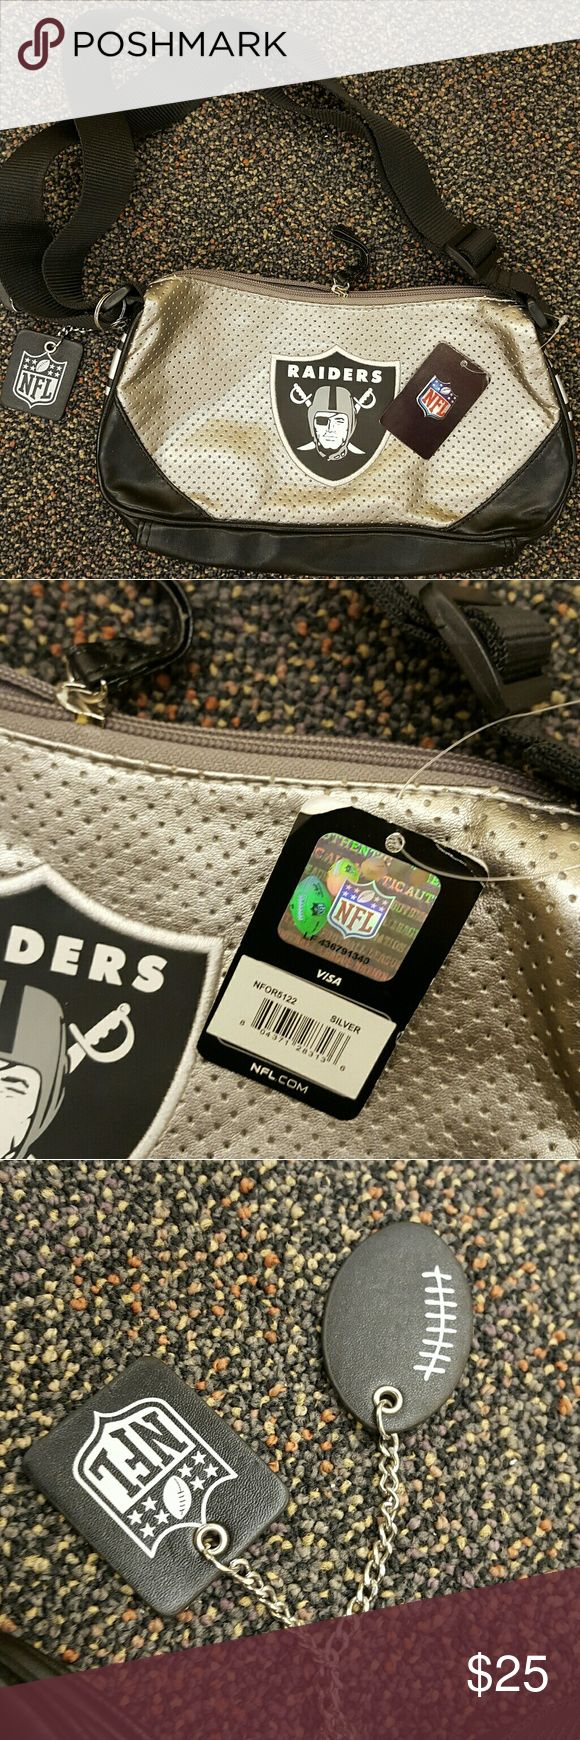 NEW Raiders purse Brand new never used Raiders purse. Perfect for a game or NFL with your friends. :) NFL Bags Shoulder Bags